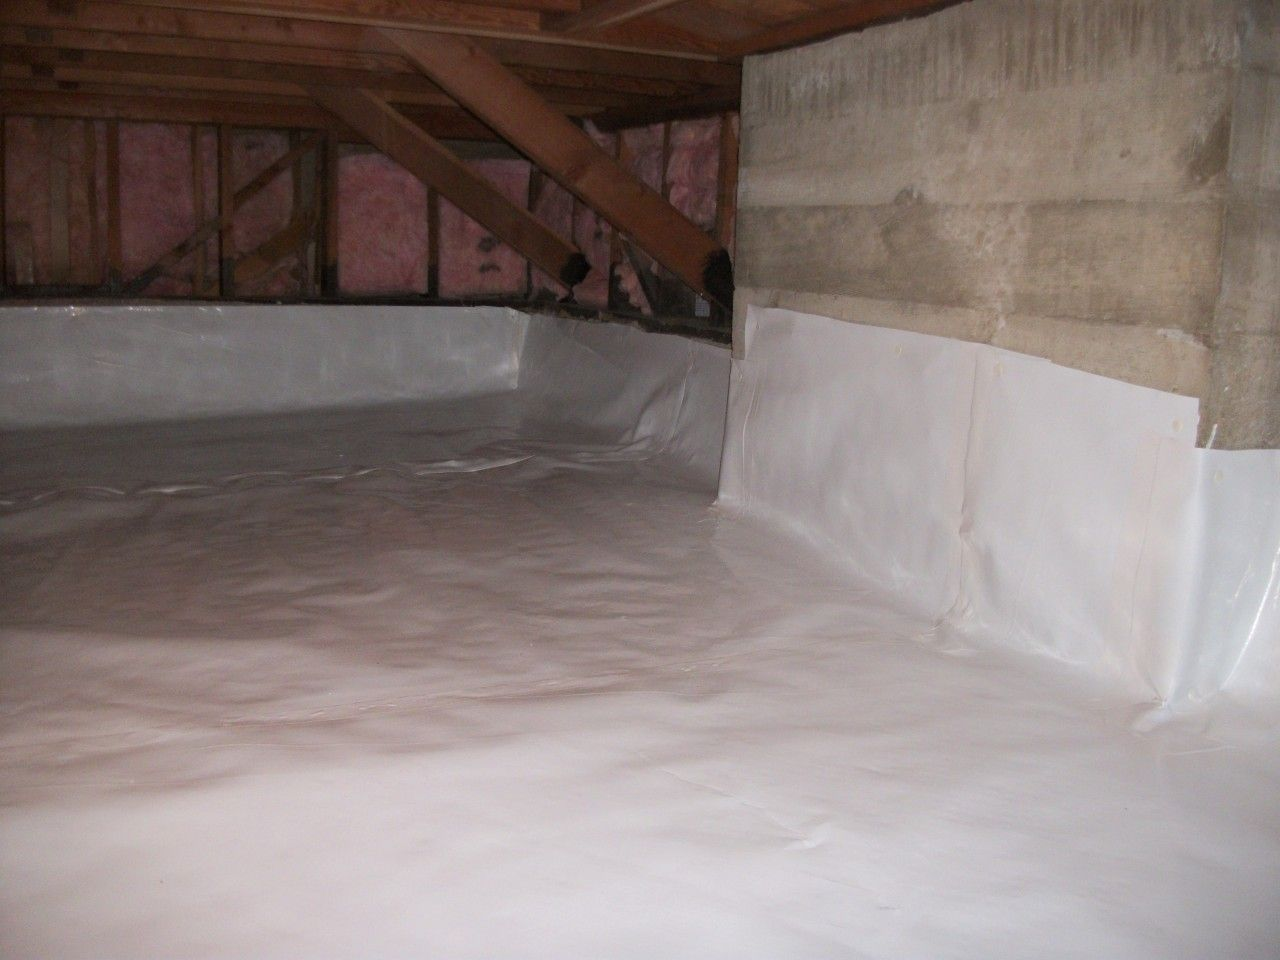 Gps Crawlspace 1800 Crawlspace Vapor Barrier Free Shipping 12 X 100 Crawl Space Vapor Barrier Crawlspace Crawl Space Encapsulation